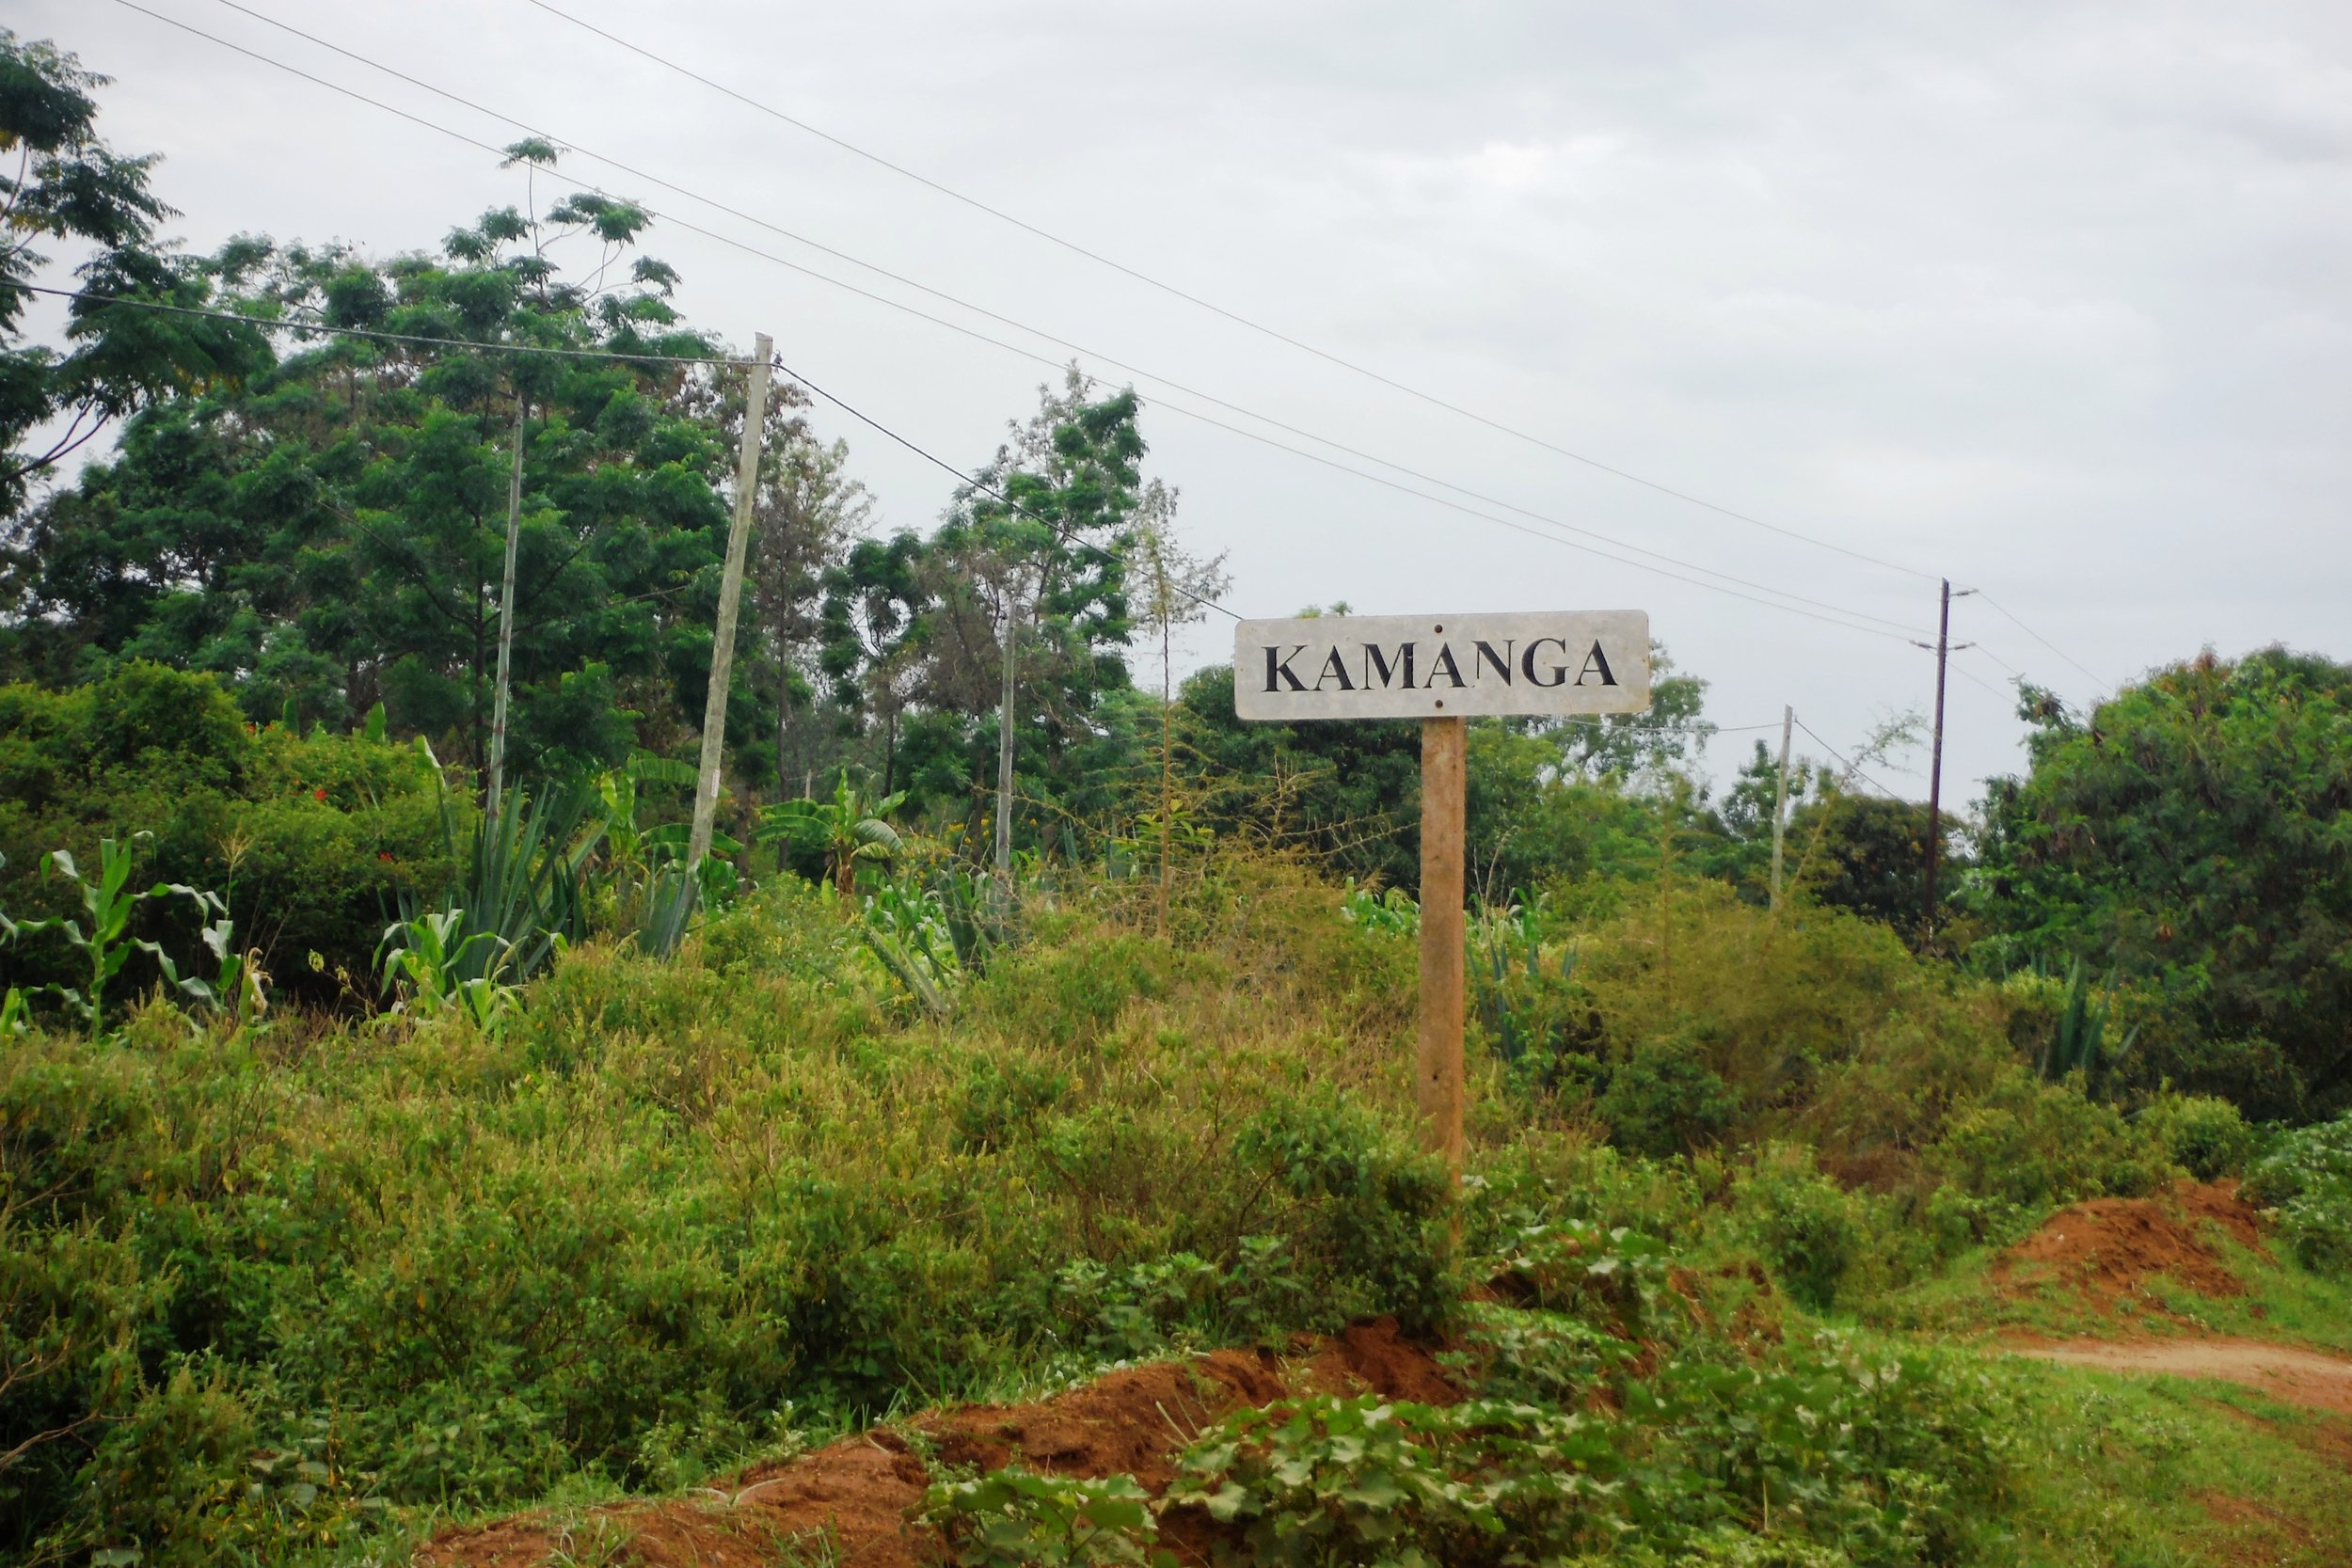 clour kamanga sign.jpg